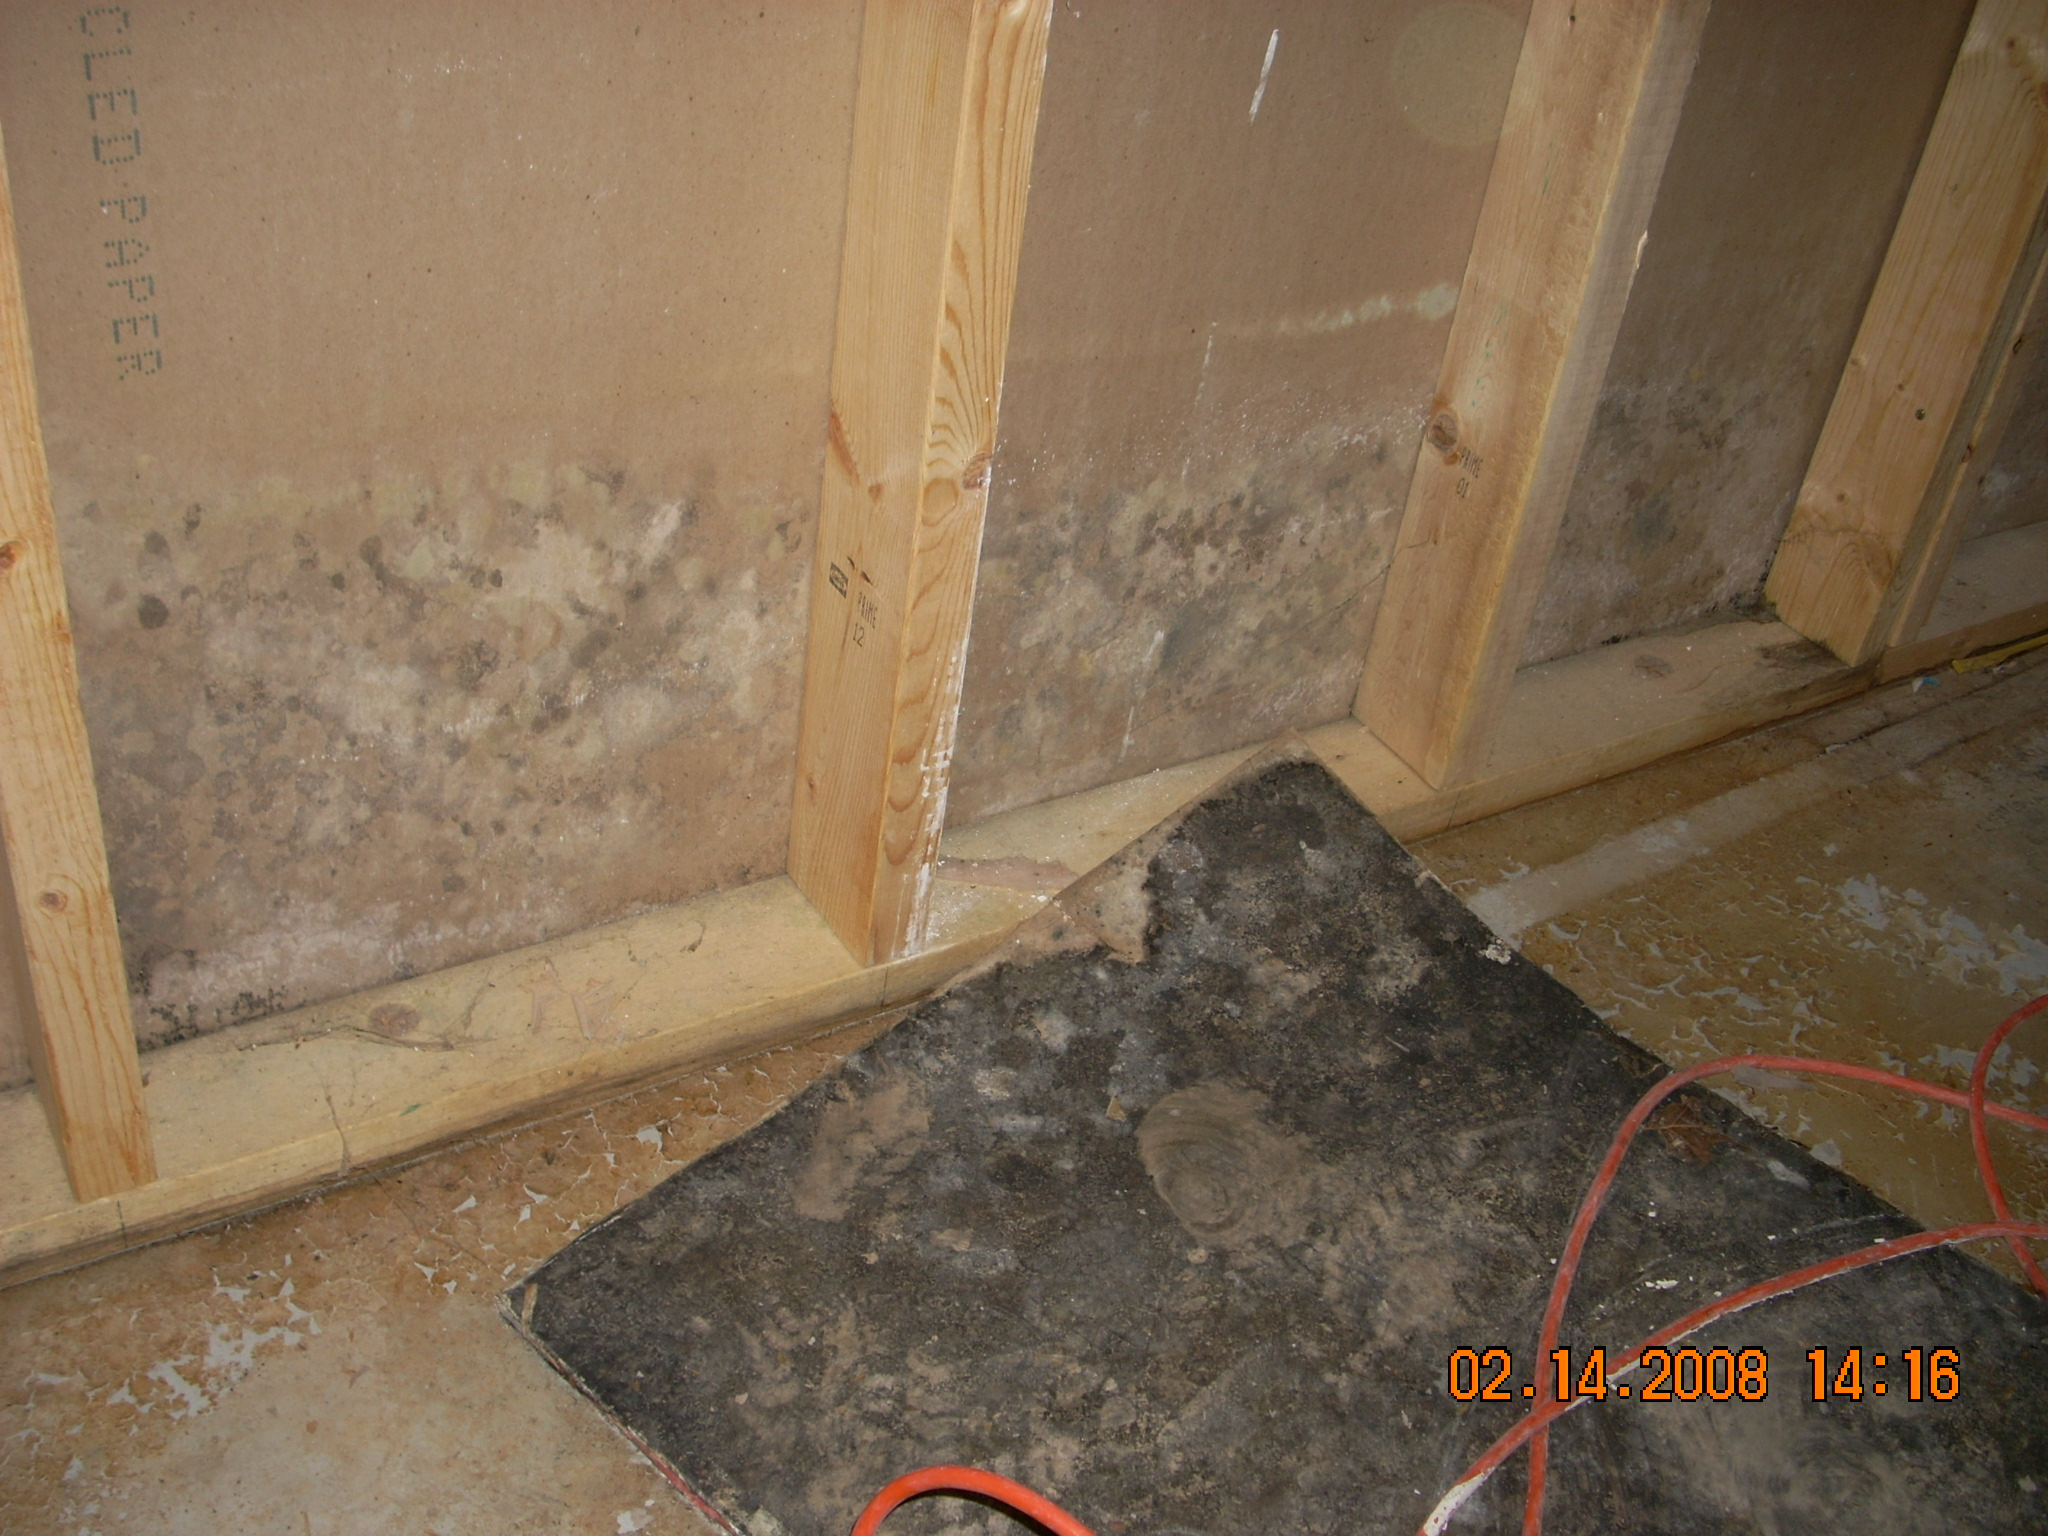 Flooding causing mold